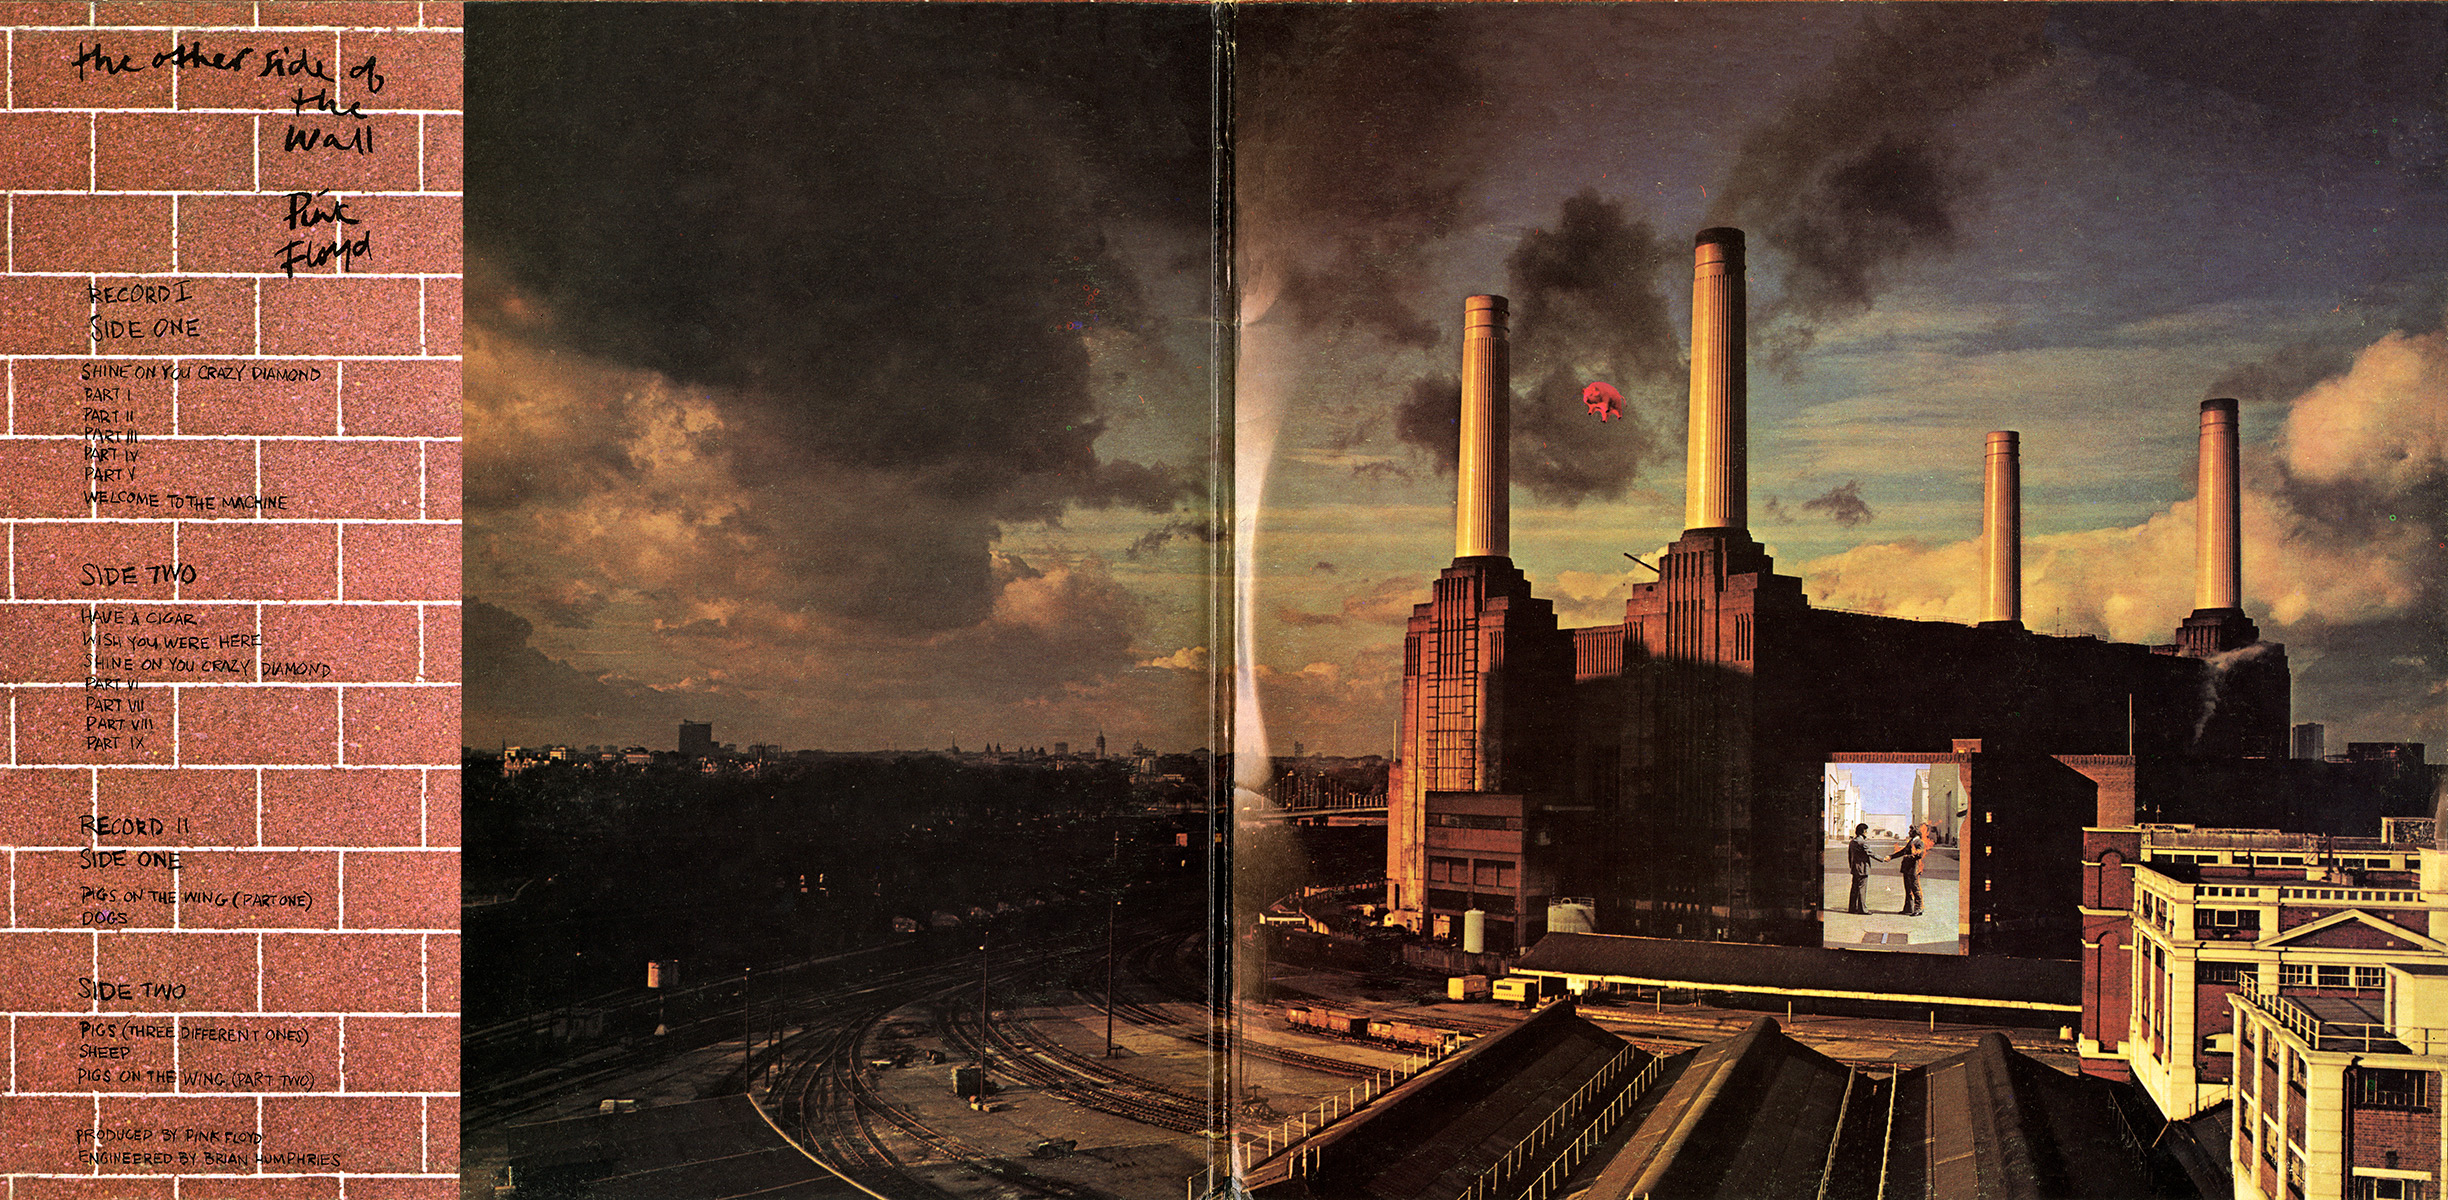 Pink floyd animals -  Animals Cover With The Burning Man Picture On Battersea Spine The Other Side Of The Wall Pink Floyd Agp 79 80 110 Labels Orange Cbs Labels